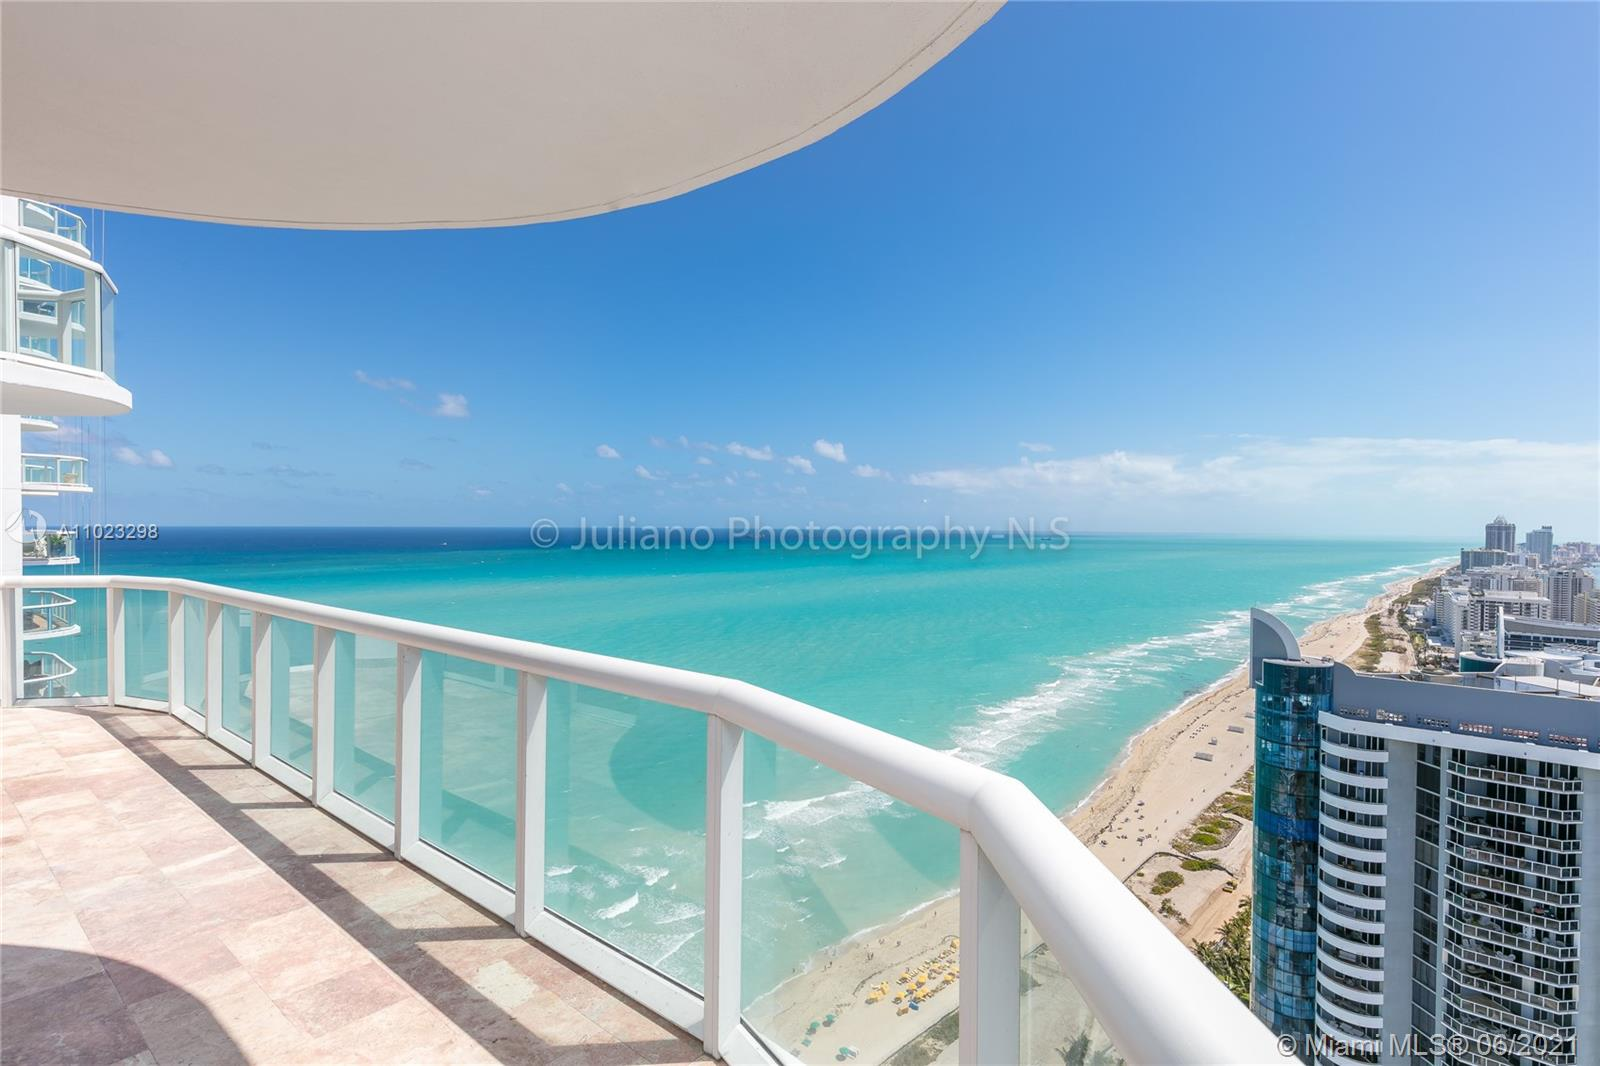 Breathtaking unobstructed views from the 41st floor!!! Floor to ceiling sliding glass doors and windows in every room for easy access to the balcony and to enjoy views of the downtown skyline, Biscayne Bay, and the Atlantic ocean. Beachfront condo with direct access to the beach. Immaculate marble flooring throughout the living and dining area and wood flooring in the bedrooms to keep your feet warm. The kitchen is equipped with top-of-the-line stainless steel appliances and the master bath features a jacuzzi with separate shower and double vanity. Building amenities include a gym, sauna, steam room, heated pool, tennis court, beach service, attended lobby, 24-hour valet parking, and much more! A Must see!